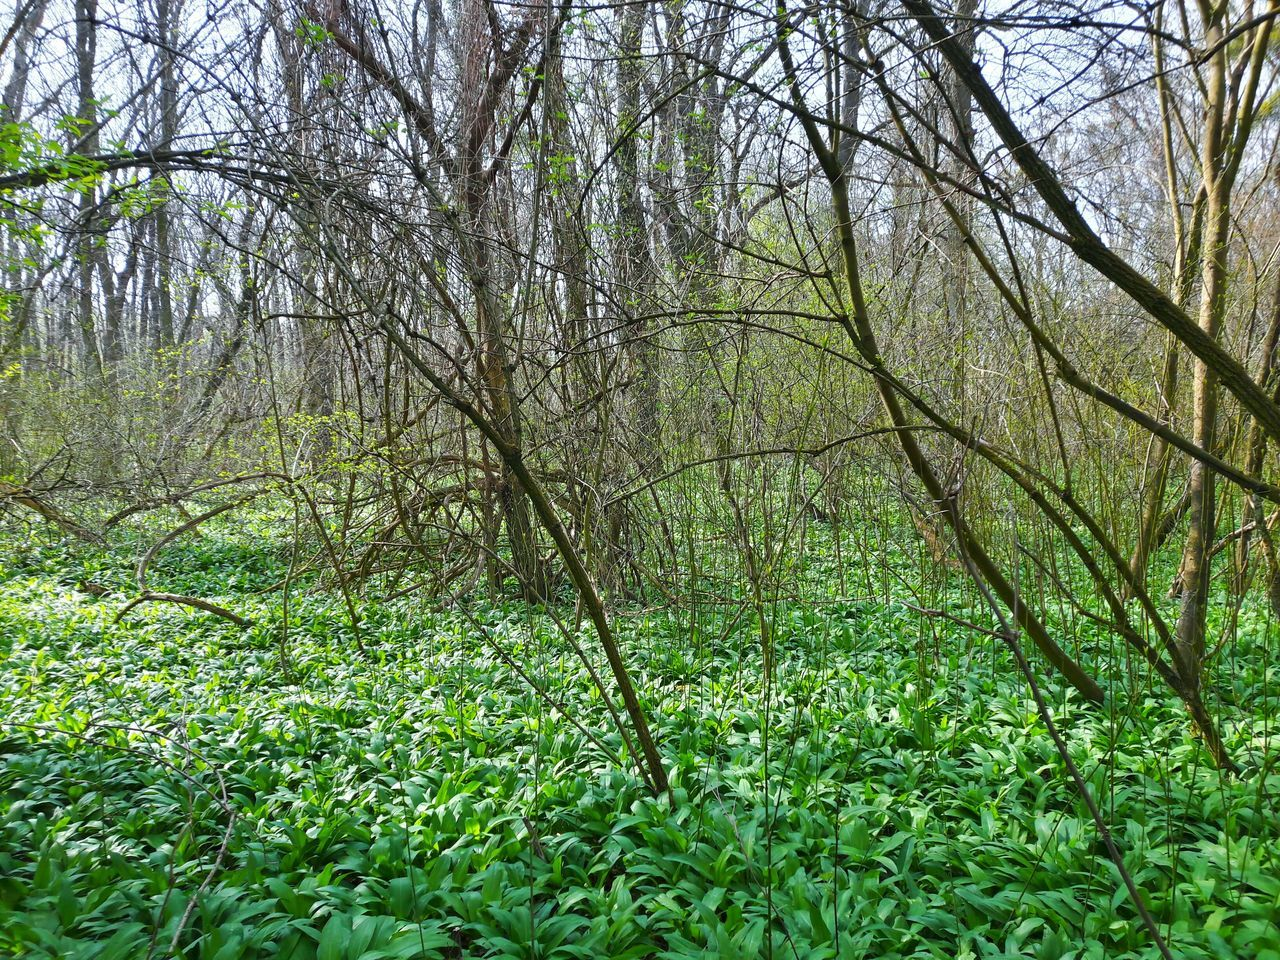 Green Color Nature Day Beauty In Nature Outdoors Lush Foliage Lush - Description Freshness Forest Tranquility Allium Ursinum Medvedi Cesnak Slovak Nature Tree Green Color Nature Growth